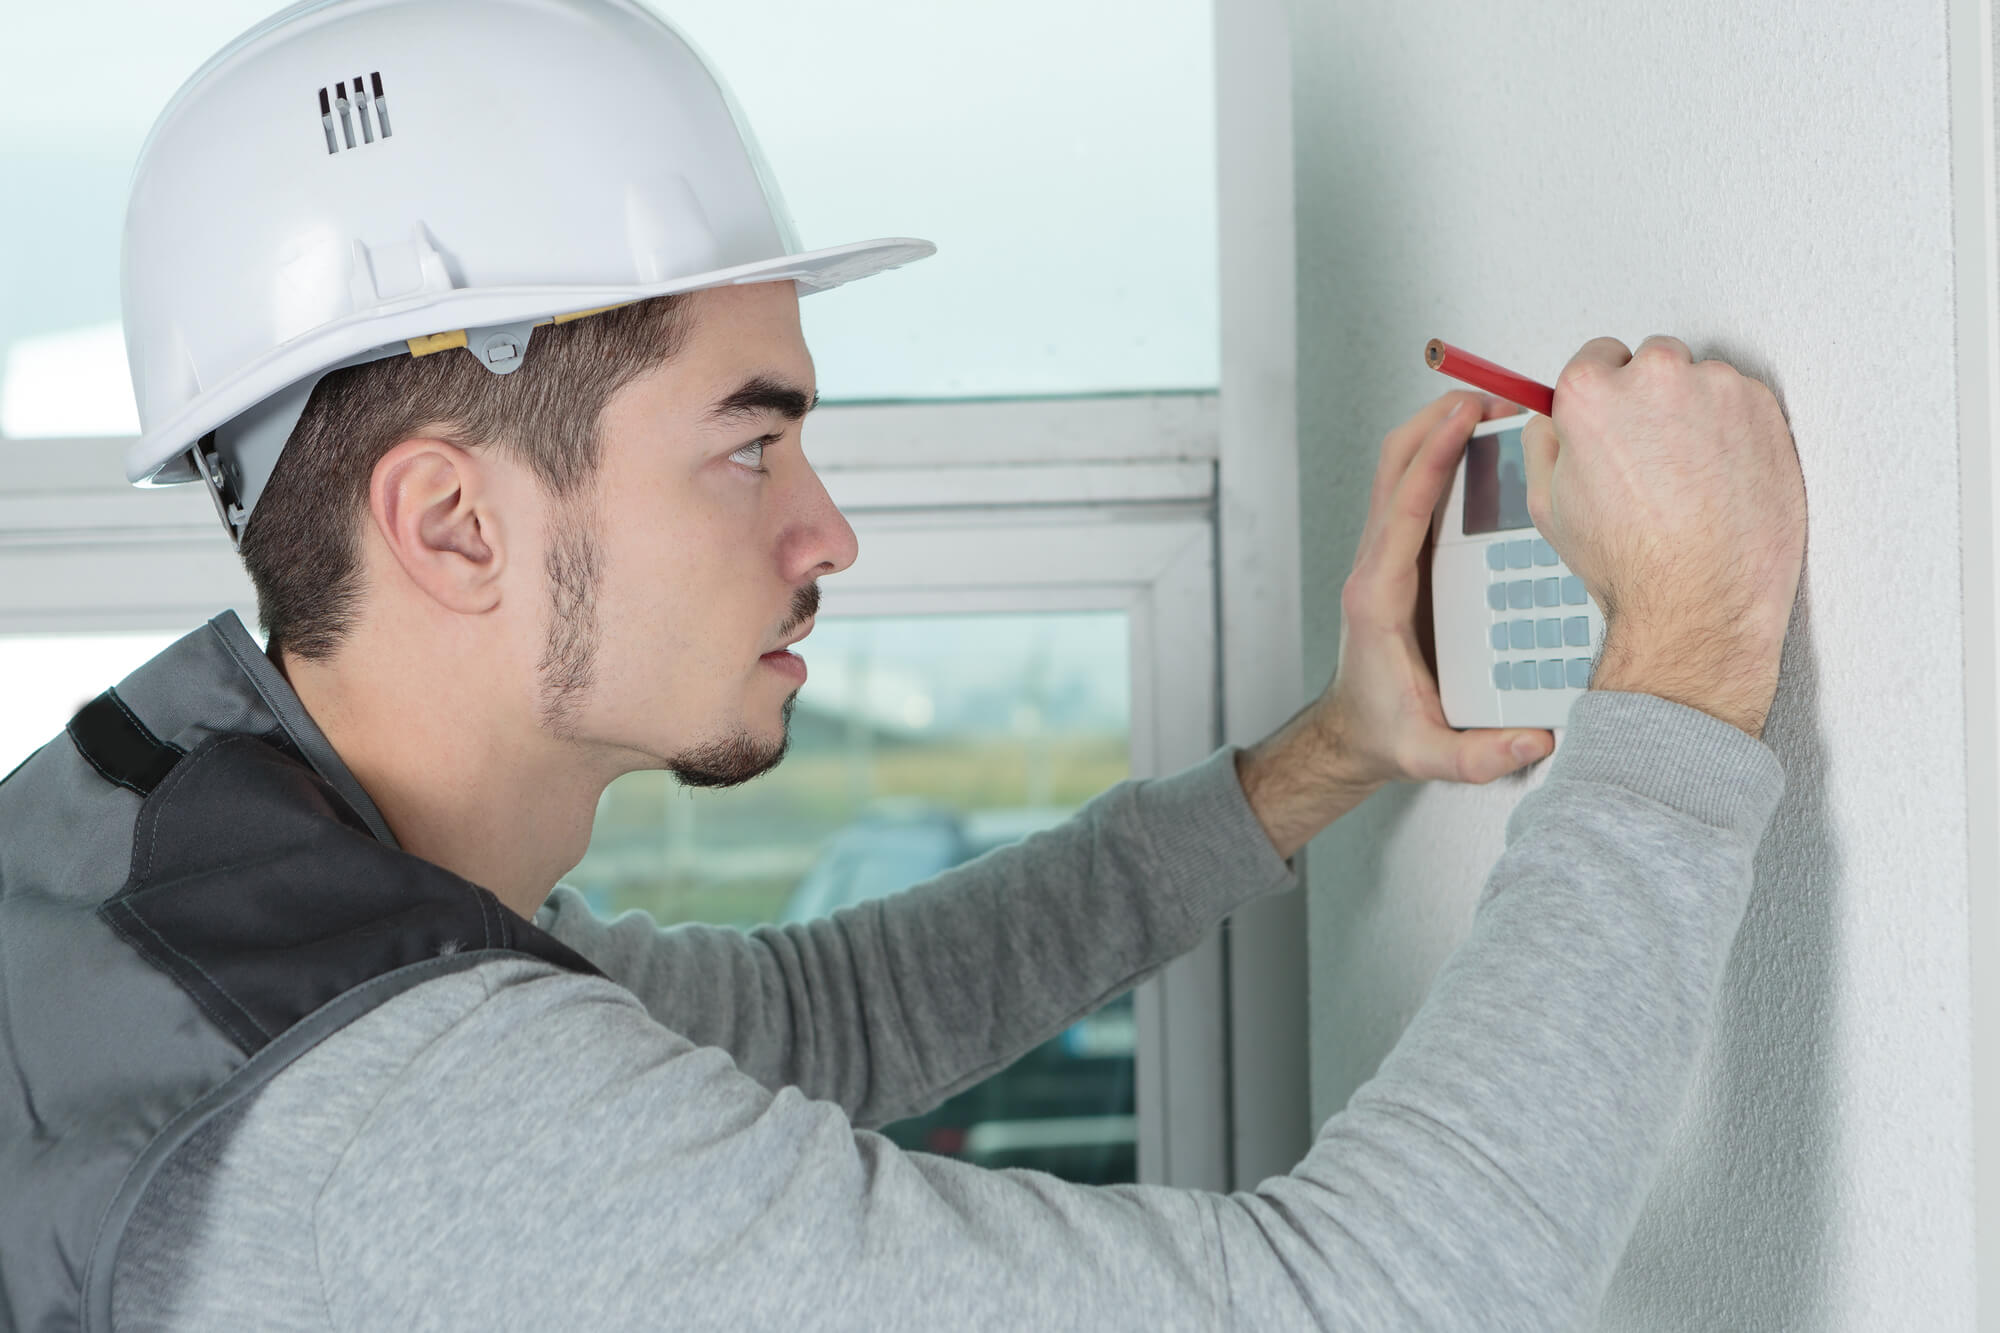 A man installing security systems in a home.